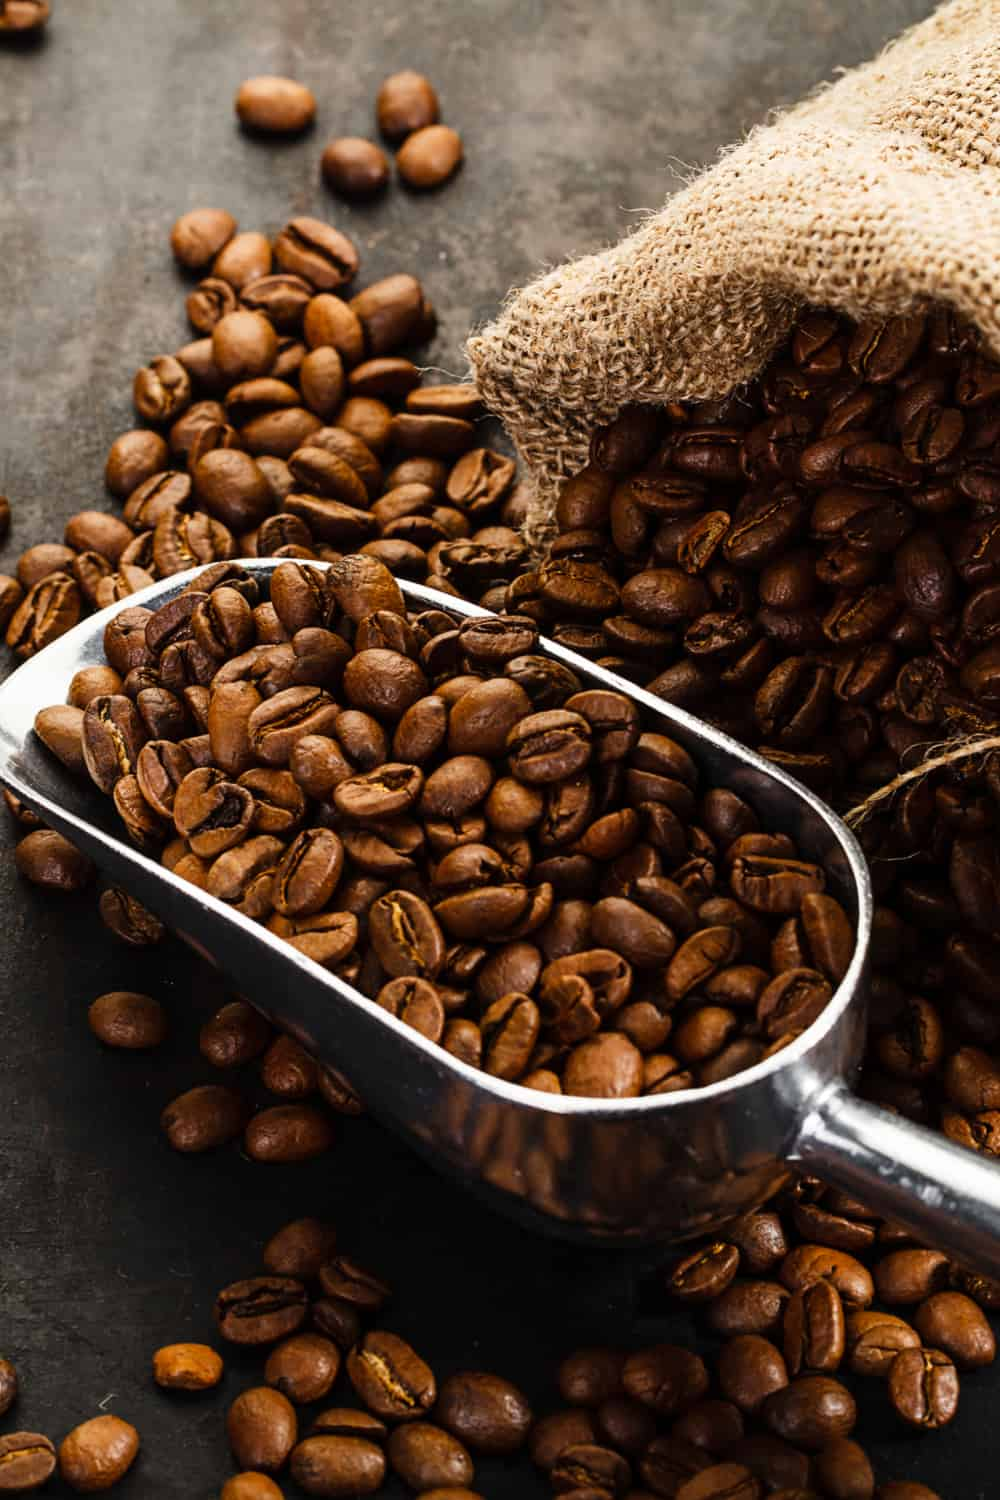 How Important is the Coffee Industry to the World's Economy